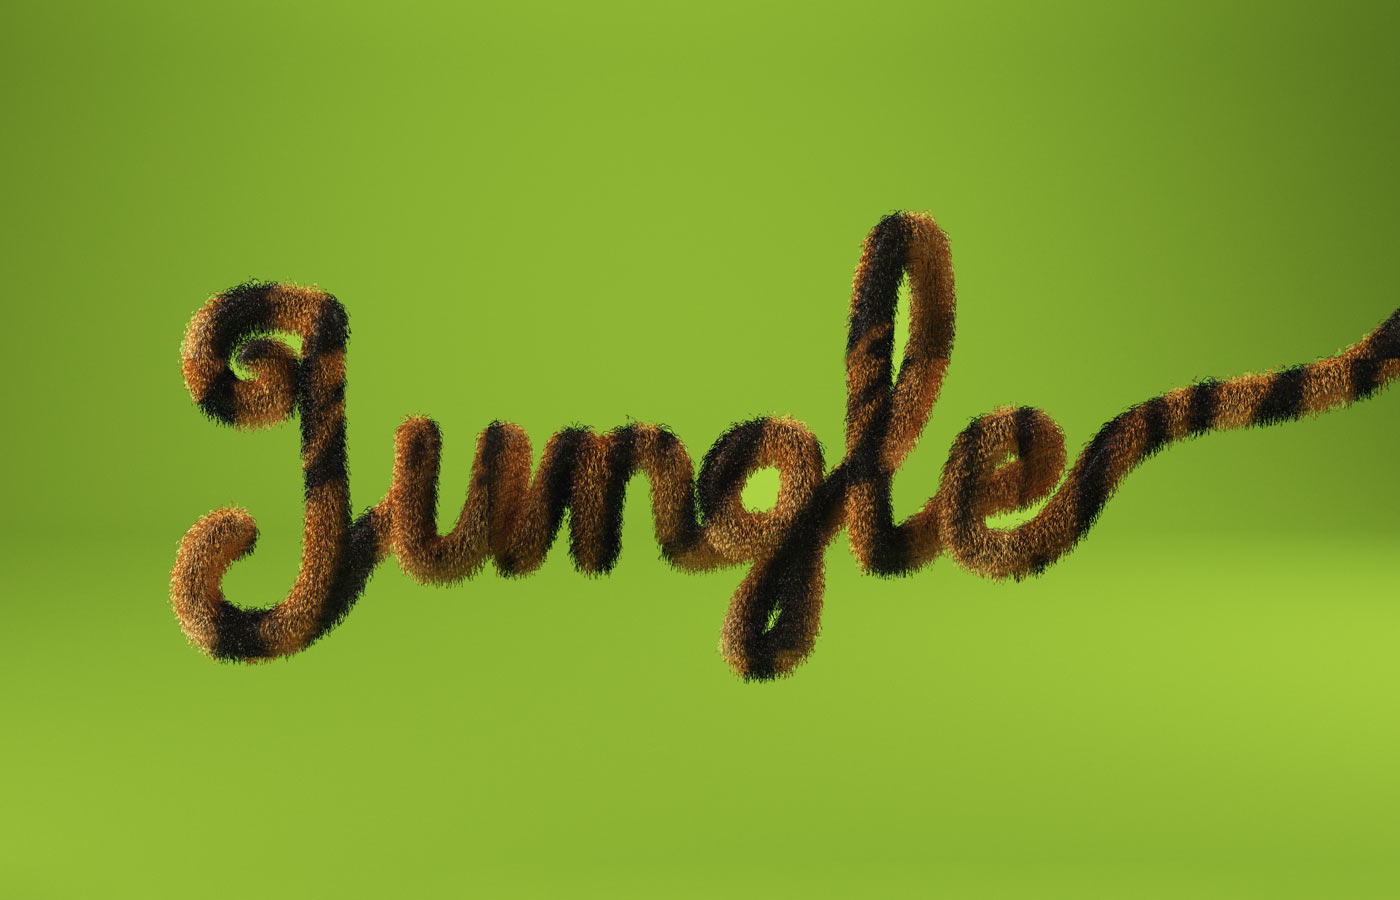 3DLETTERING CESS 3D 3DTYPE LETTERING CGI 3DARTIST ANIMAL HAIR JUNGLE